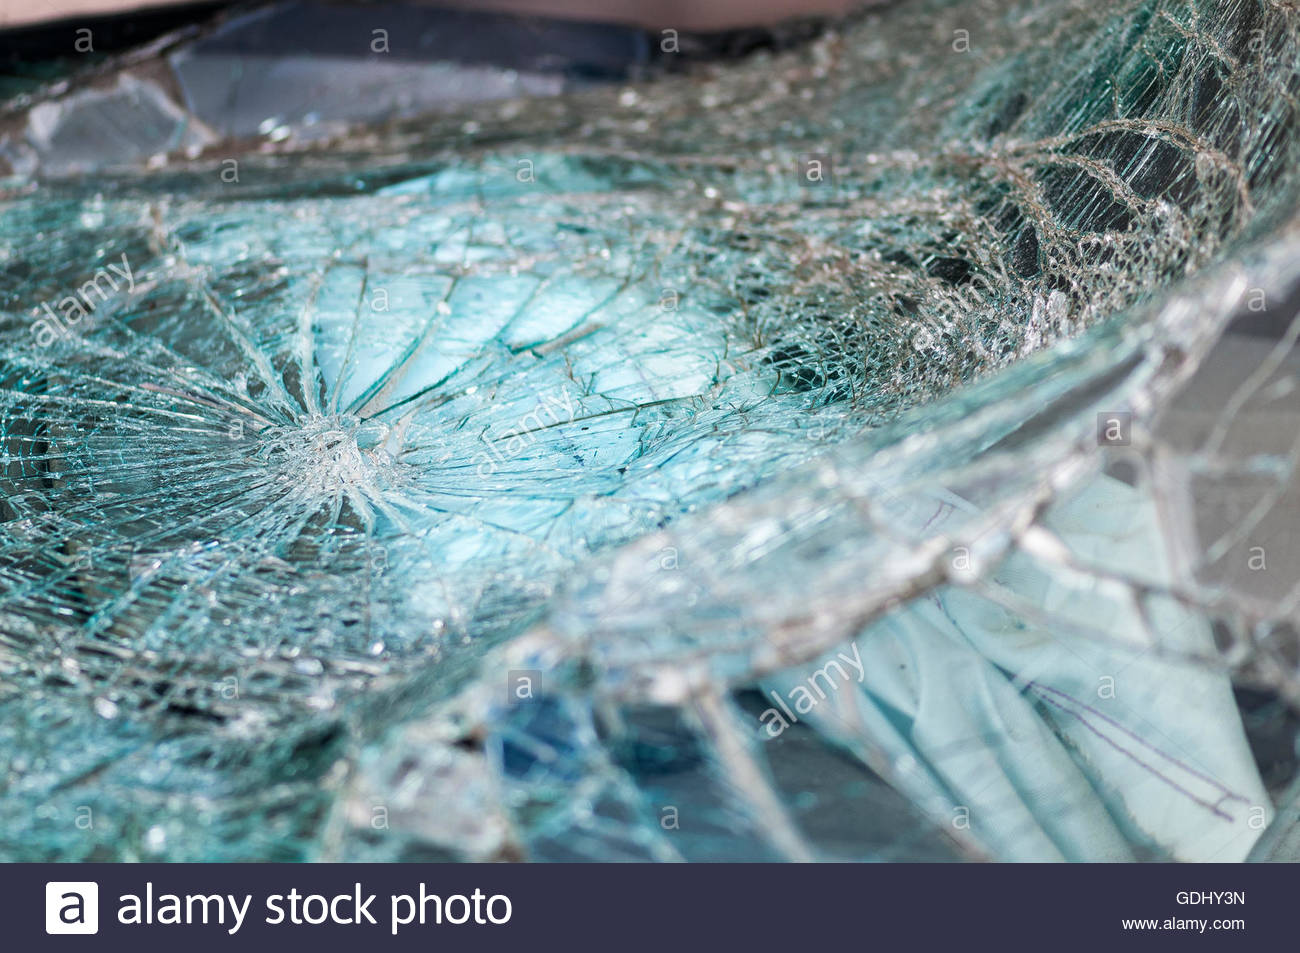 Automobile window warped into web of cracks from crash - Stock Image